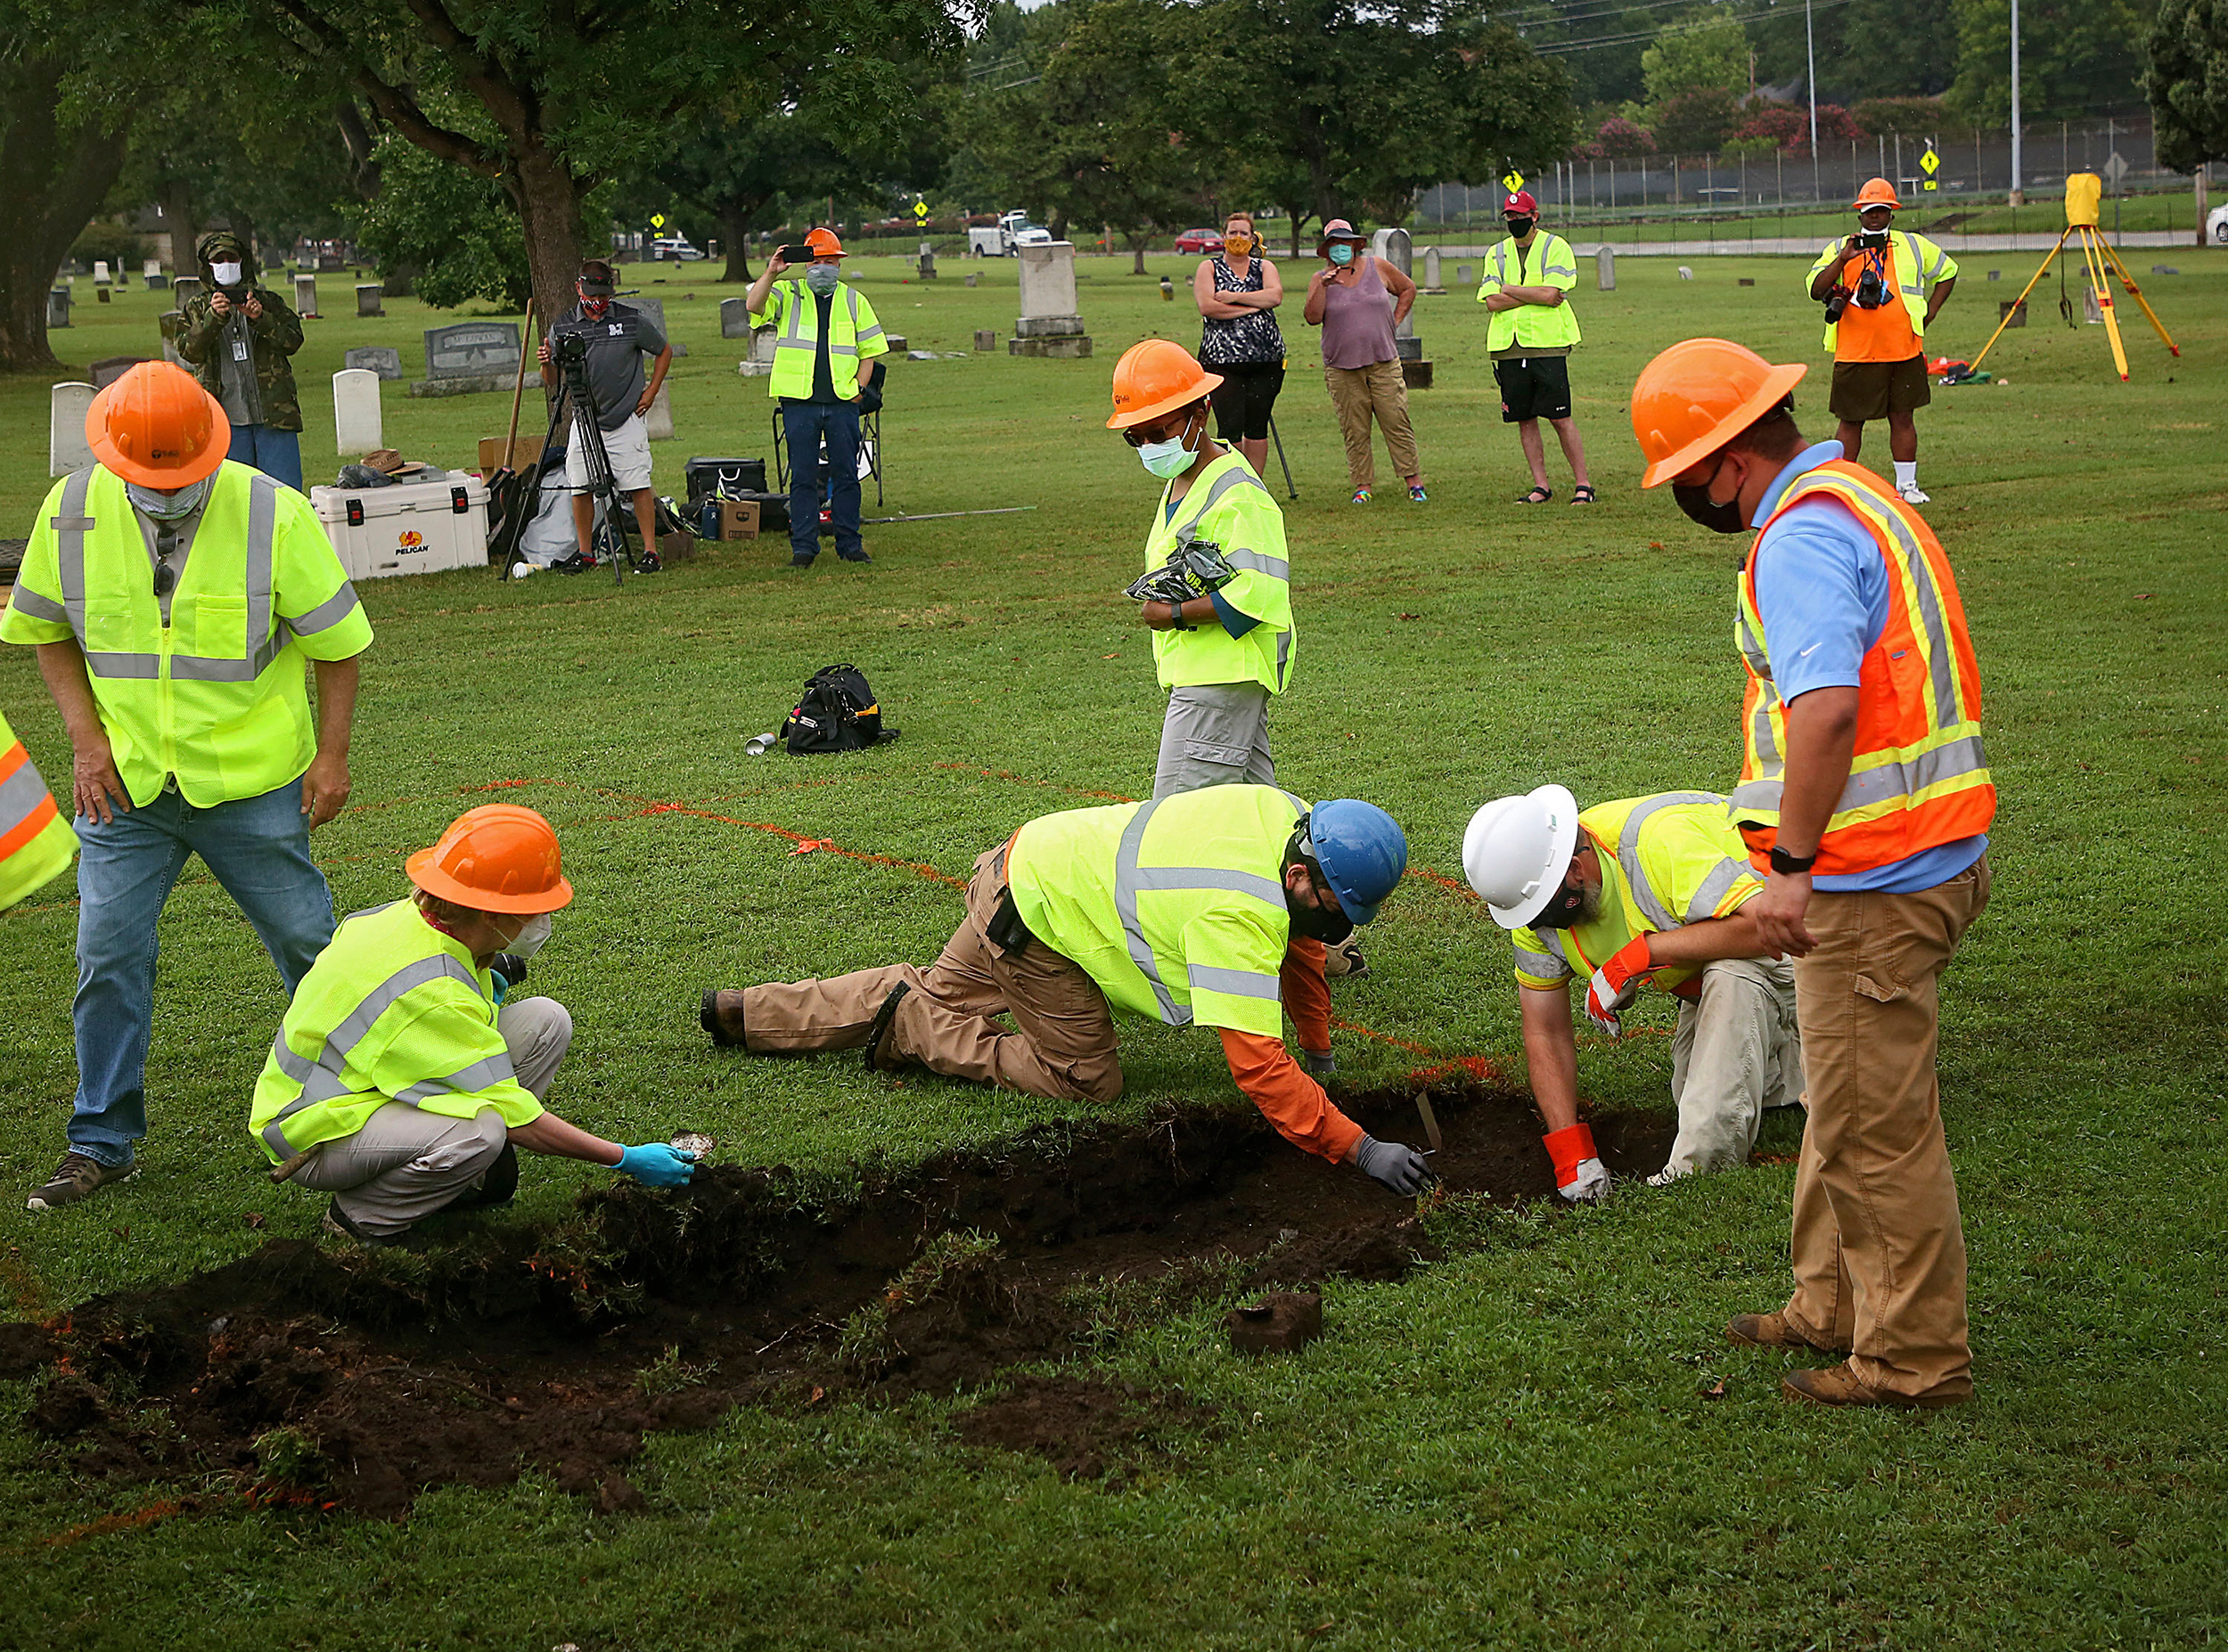 The search for a potential mass grave from the 1921 Tulsa race massacre has begun